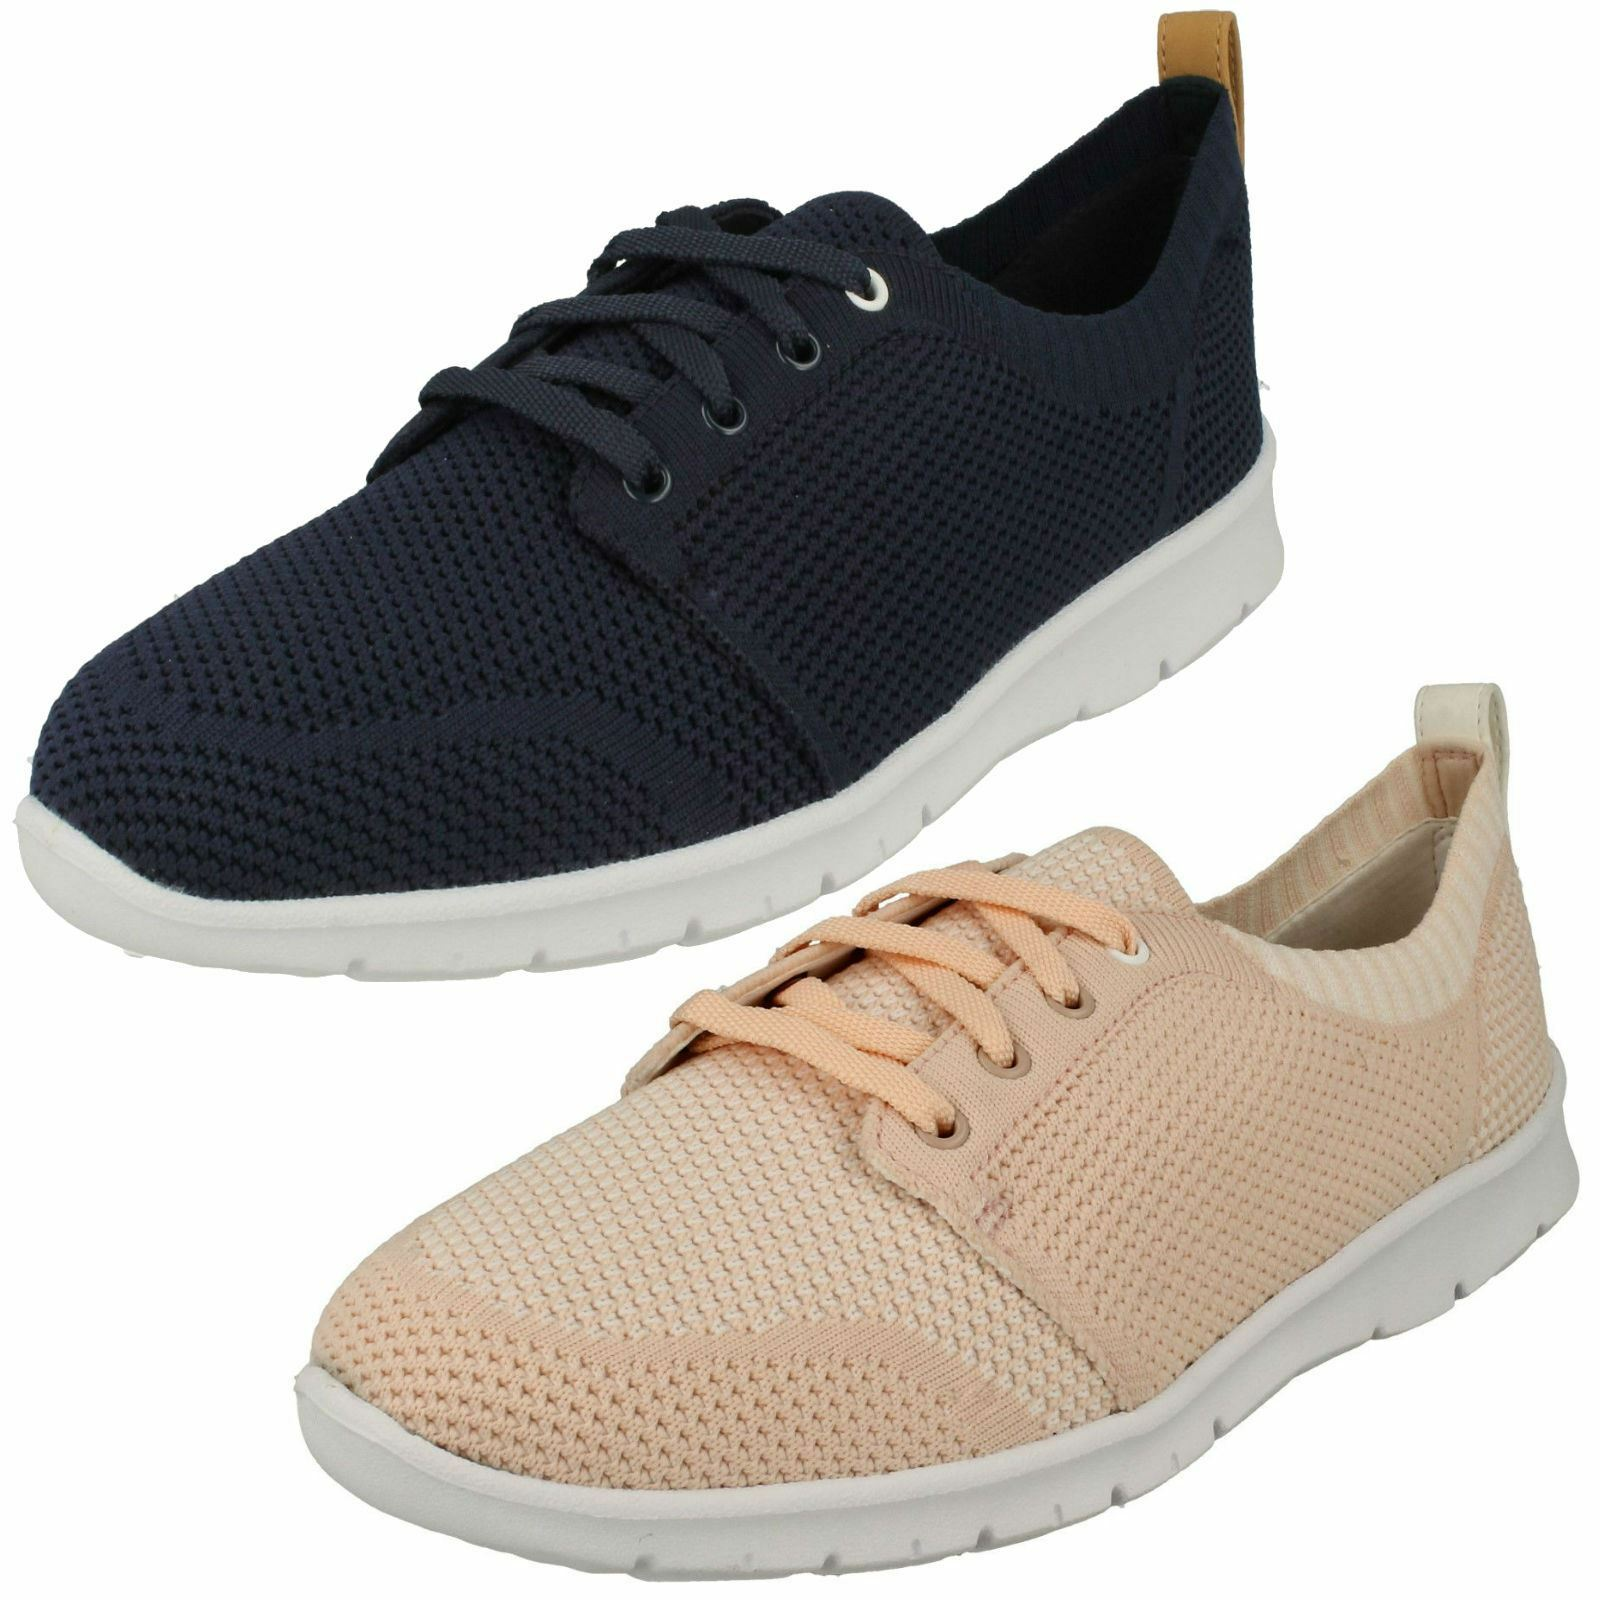 LADIES CLARKS CASUAL WIDE LACE UP TRAINERS SUMMER schuhe PUMPS STEP ALLENA SUN